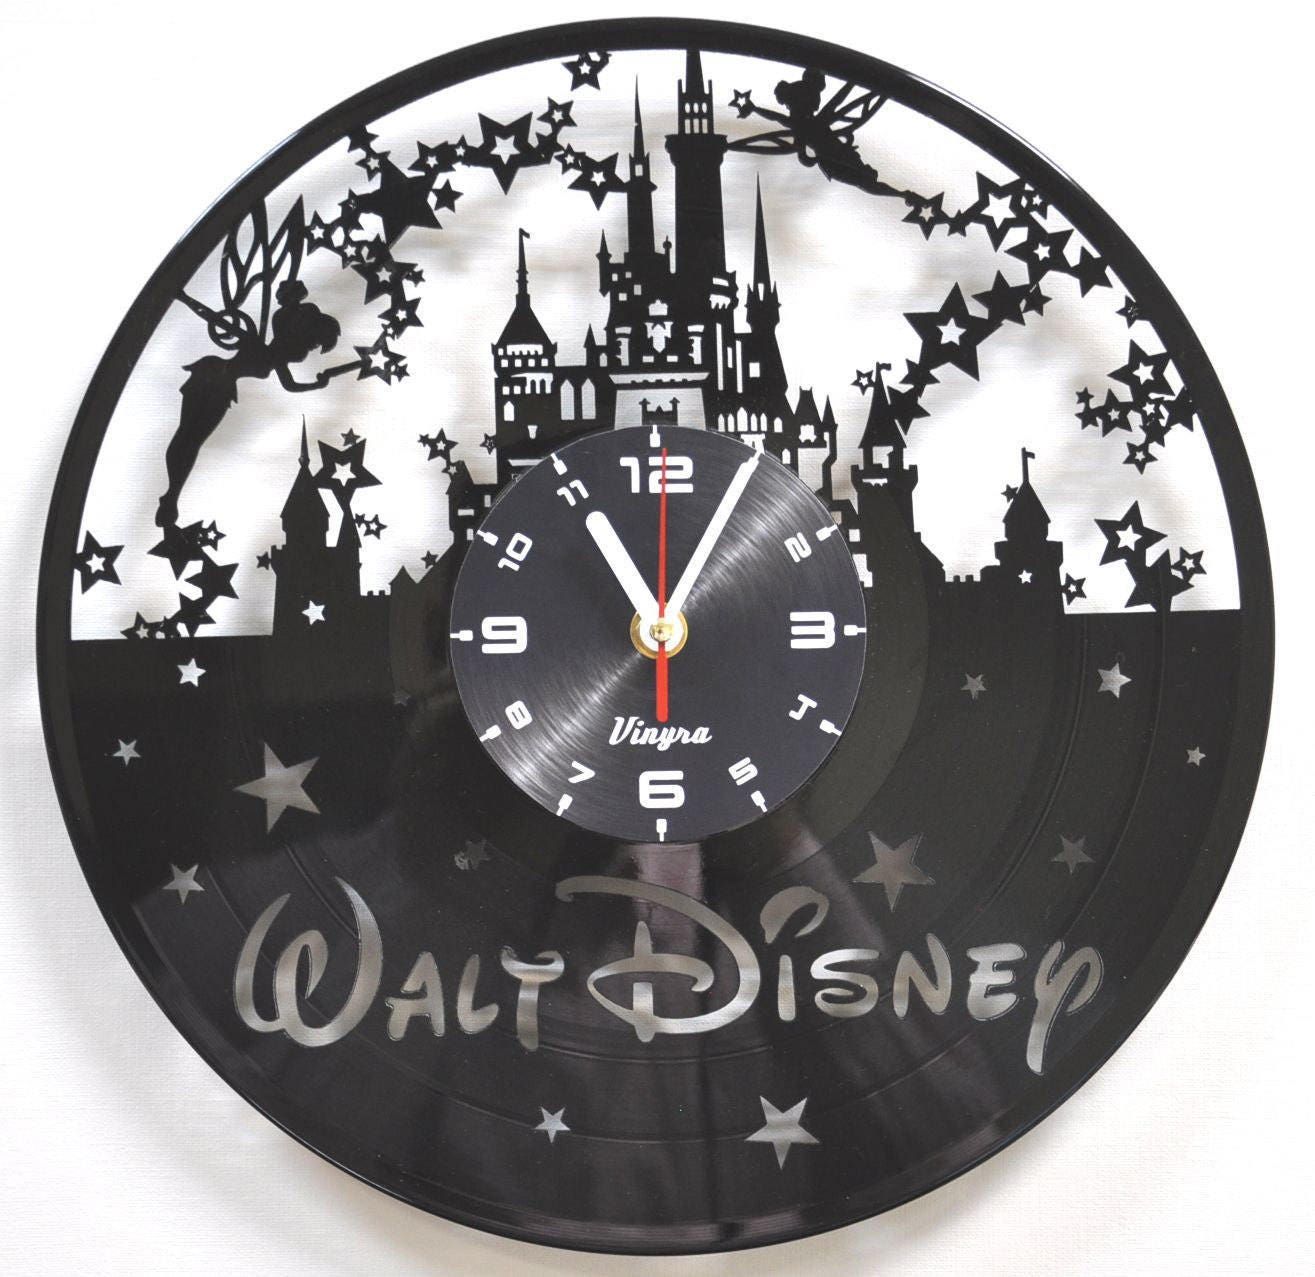 disney uhr vinyl schallplatte wanduhr. Black Bedroom Furniture Sets. Home Design Ideas